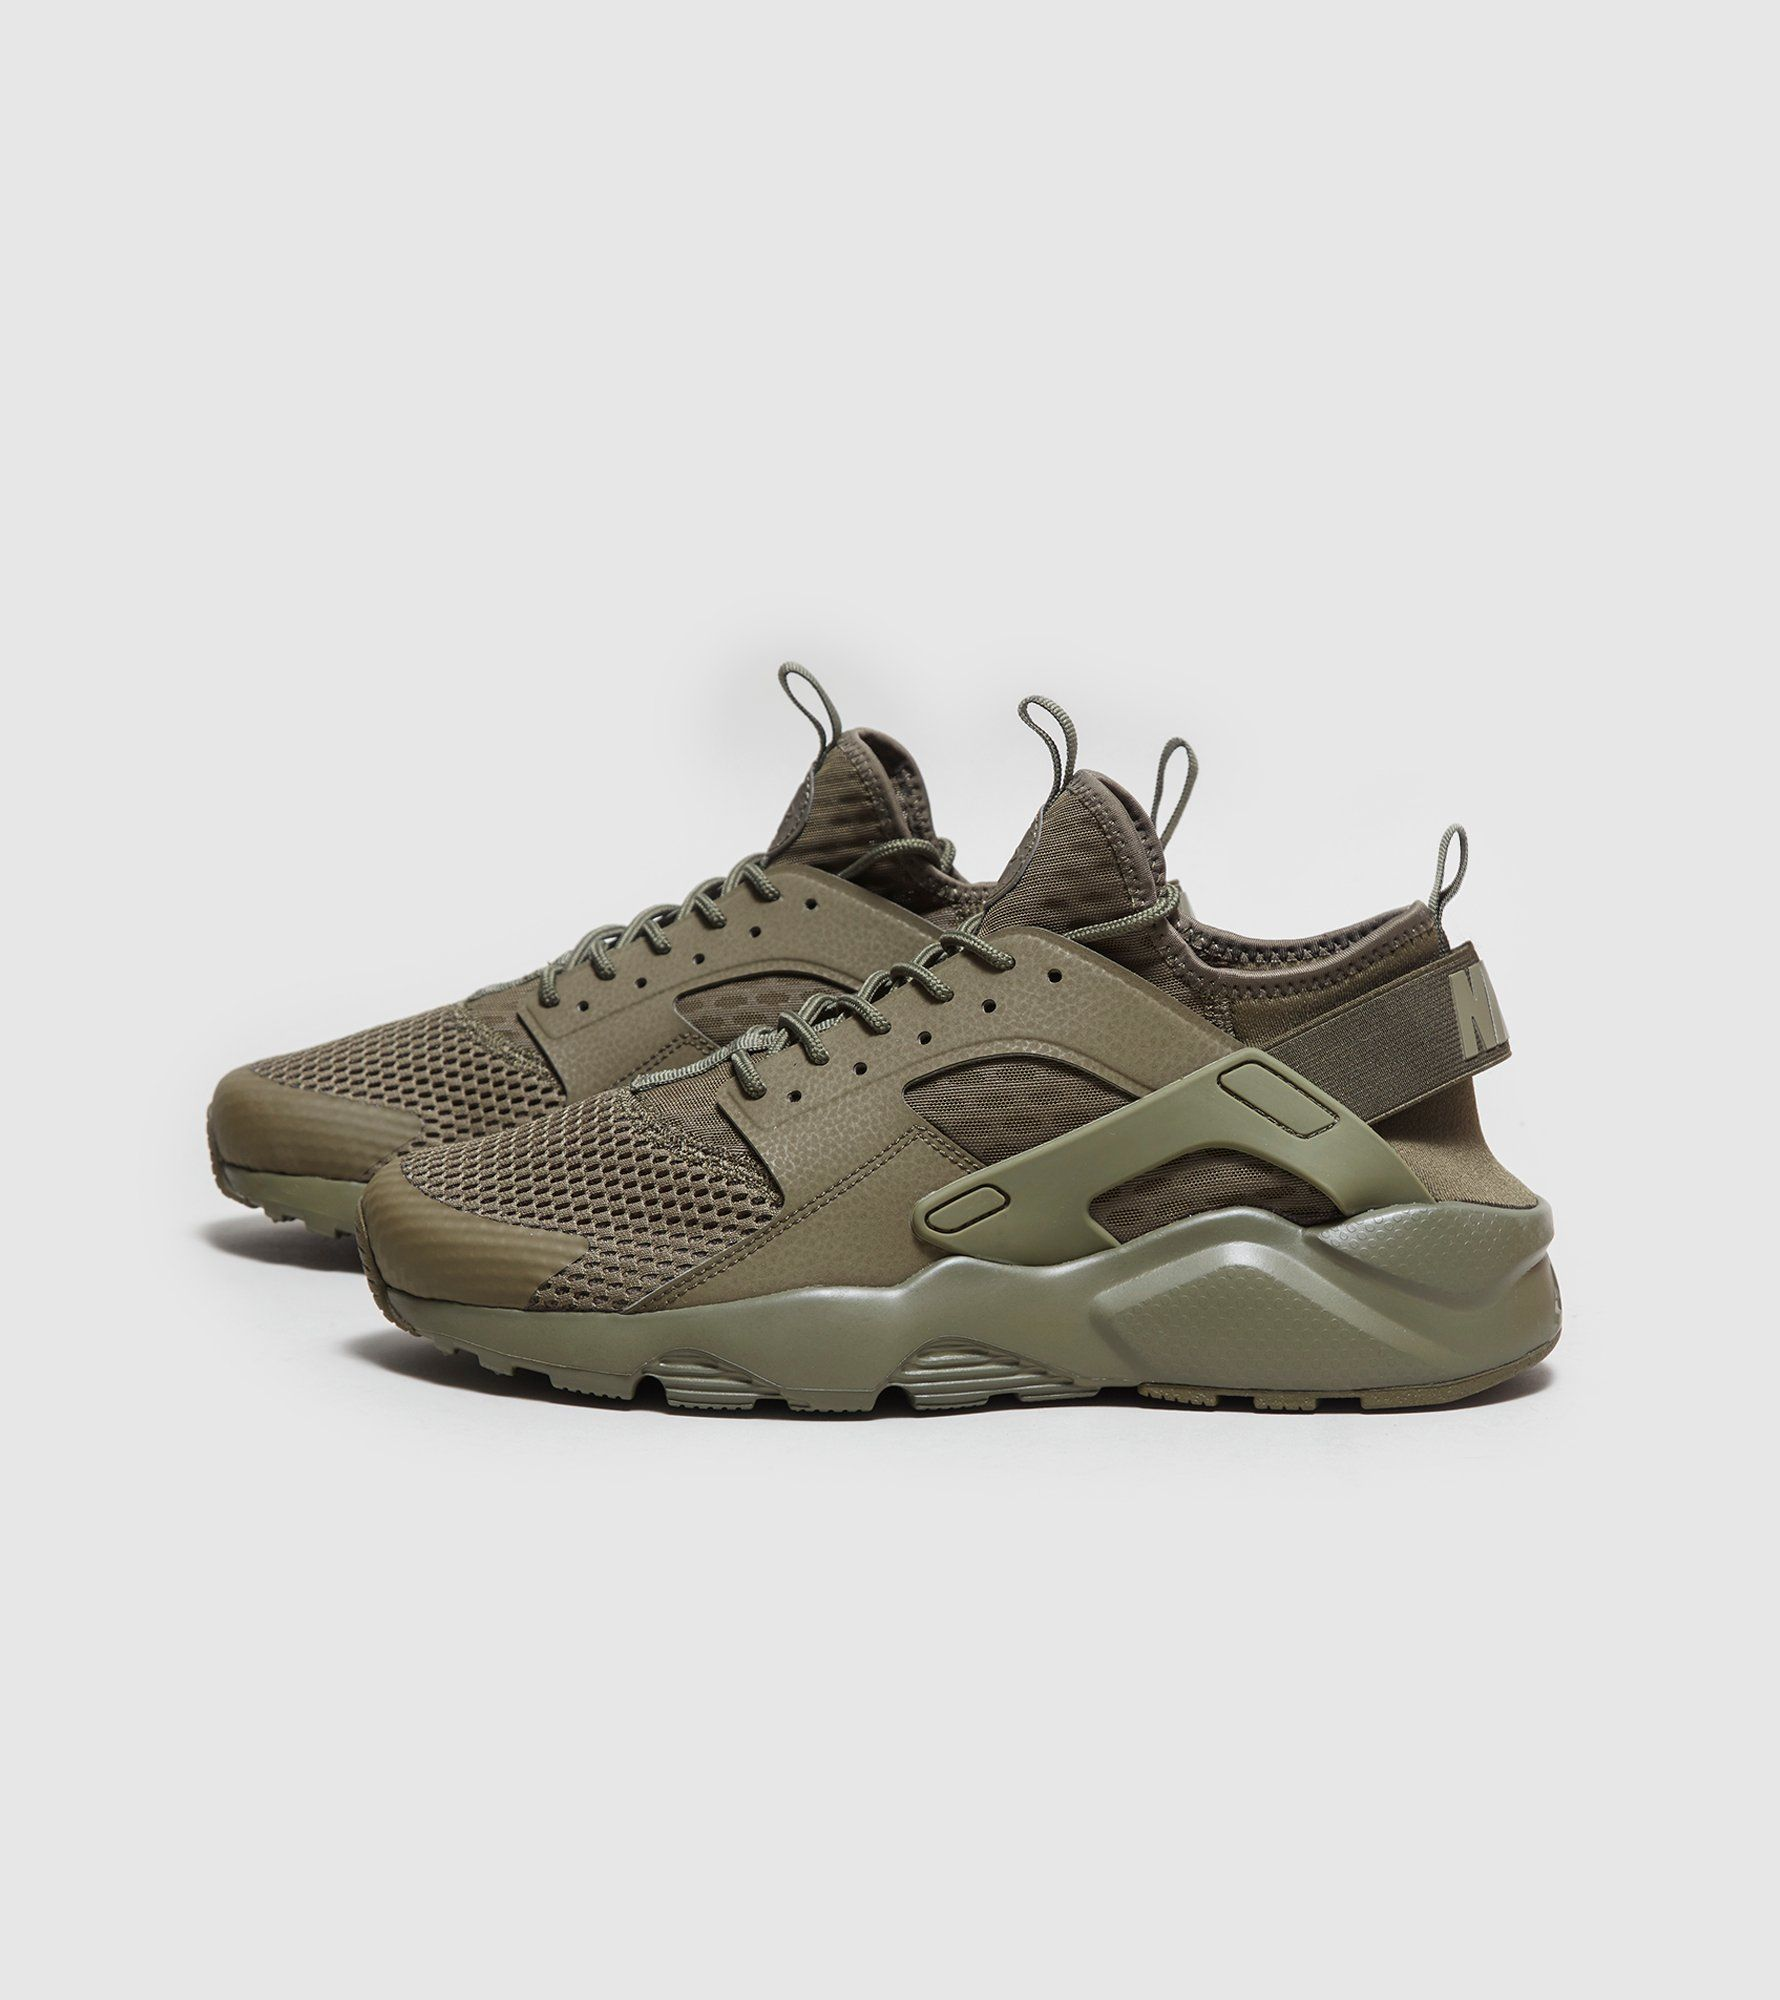 nike air huarache ultra breathe olive. Black Bedroom Furniture Sets. Home Design Ideas